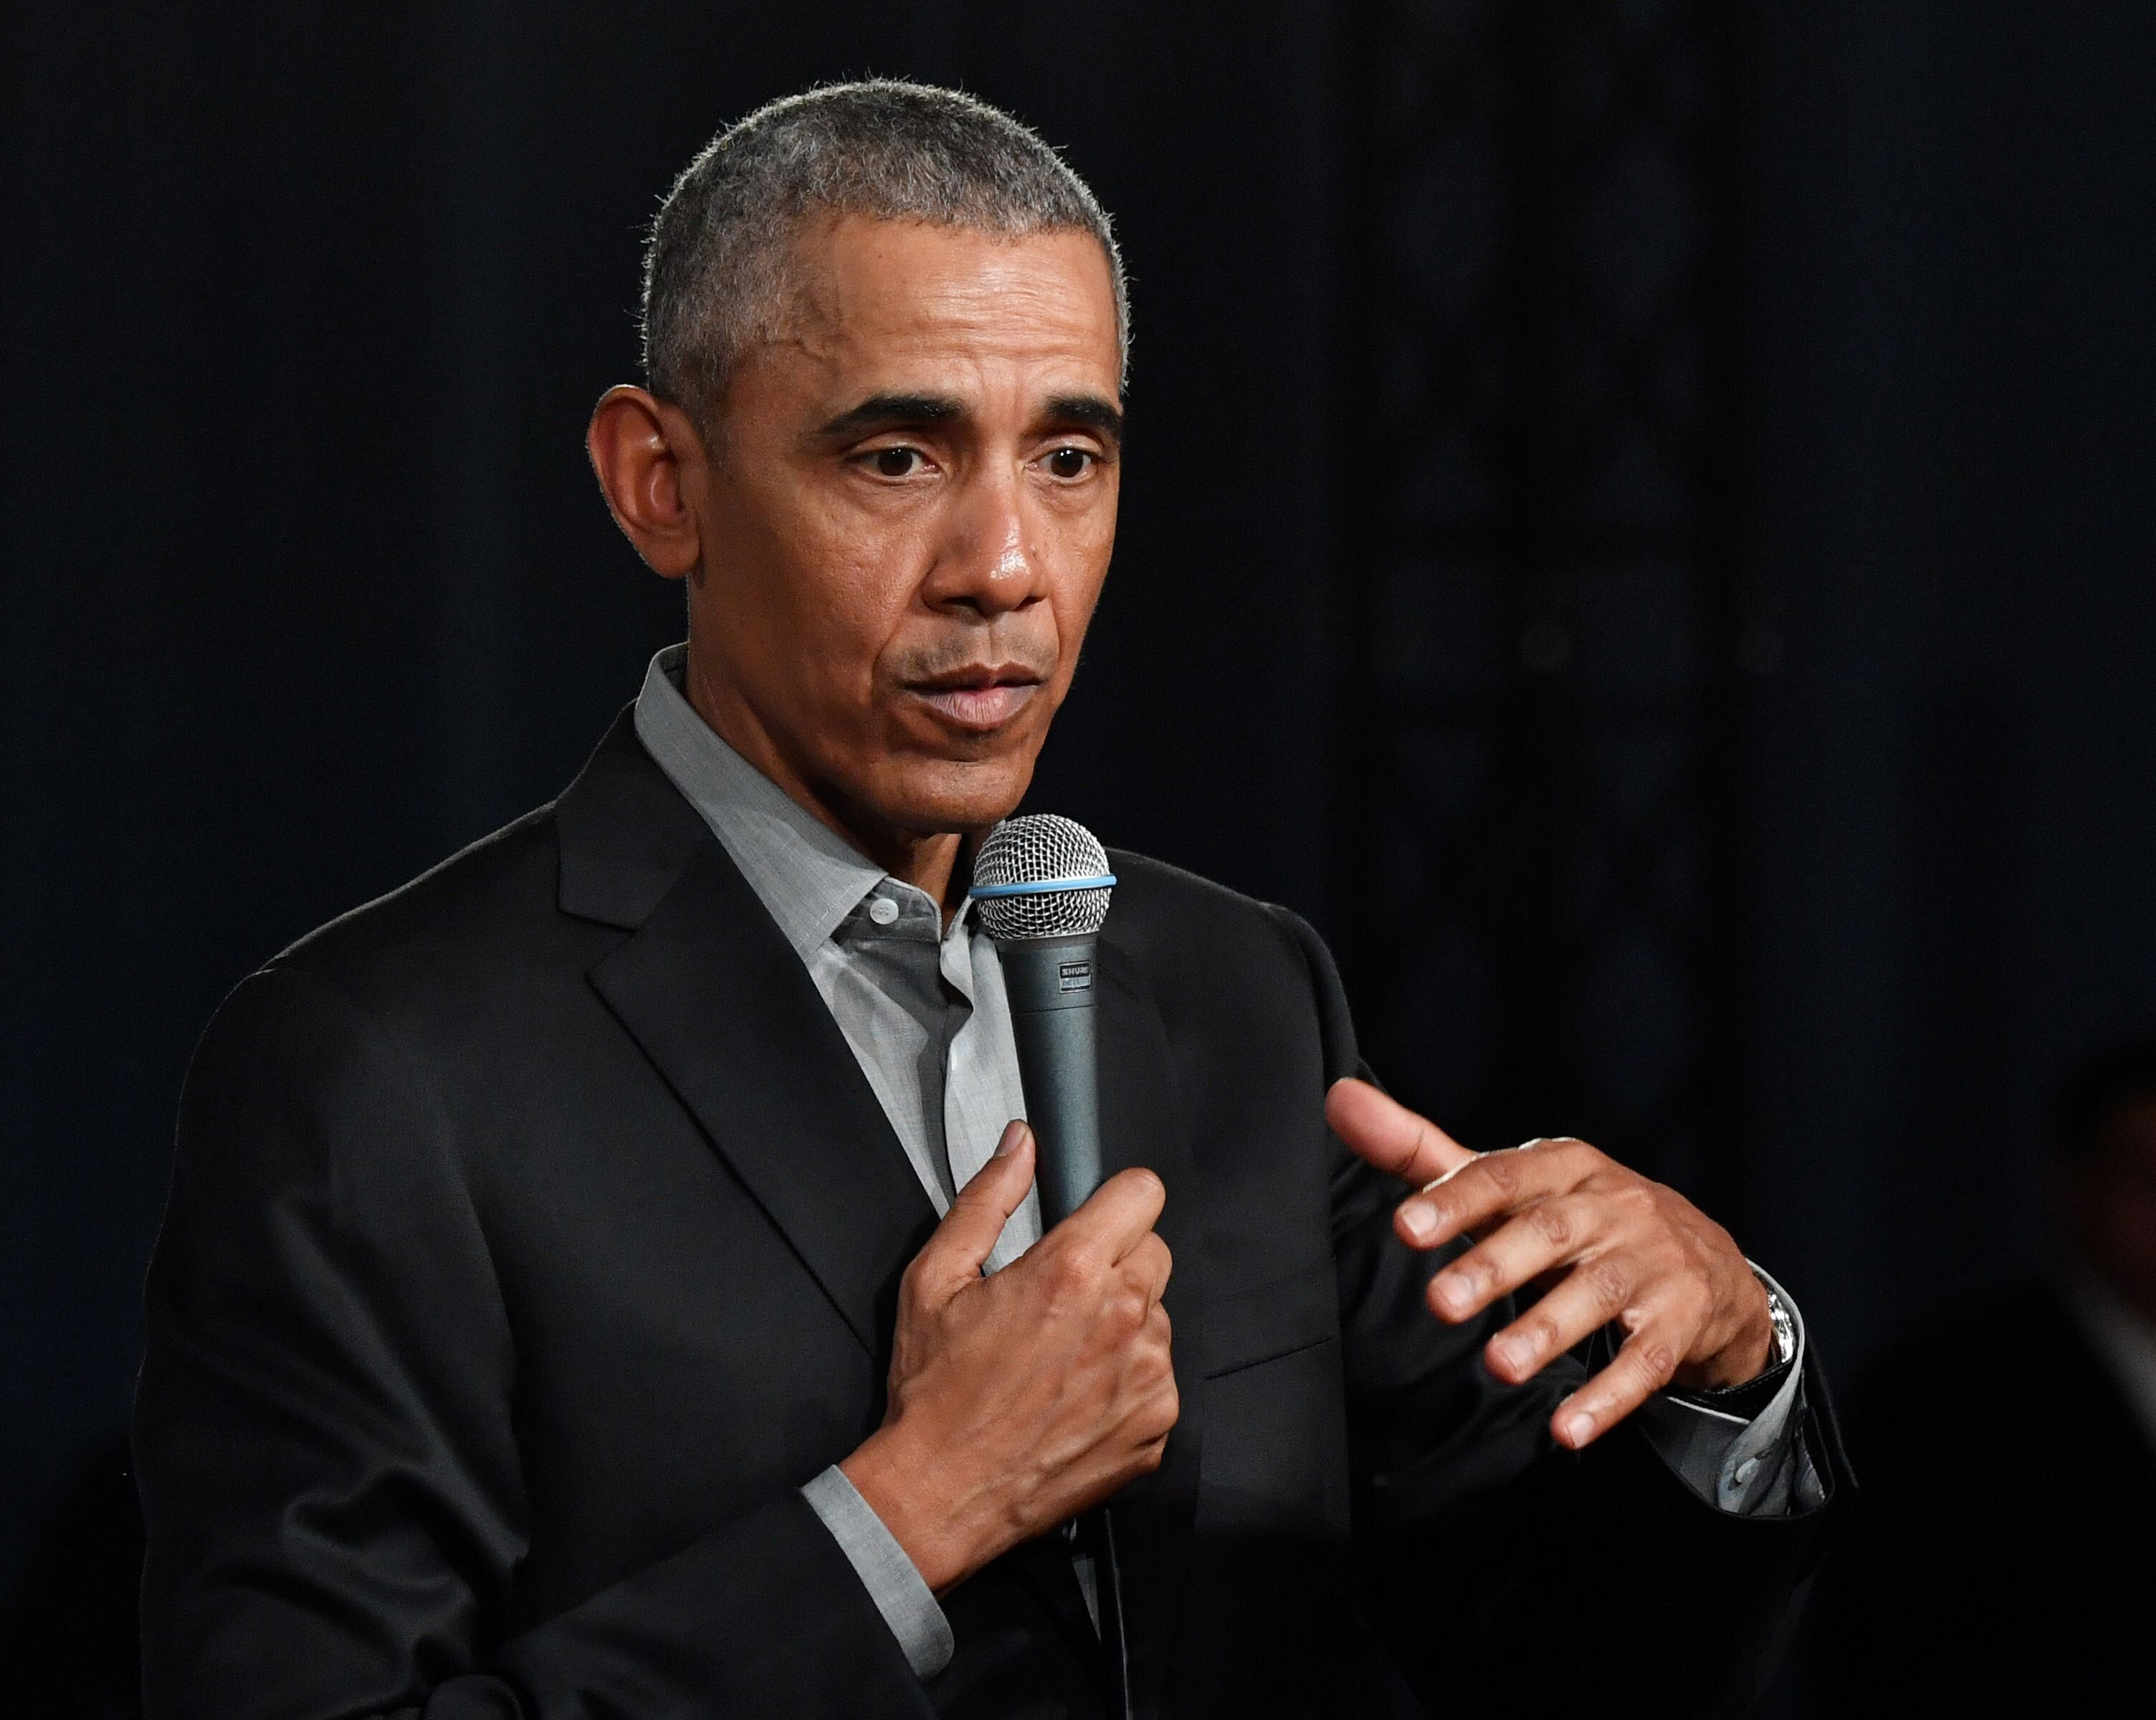 Former U.S. President Barack Obama addresses a townhall talk to discuss, among others, the future of Europe with young people